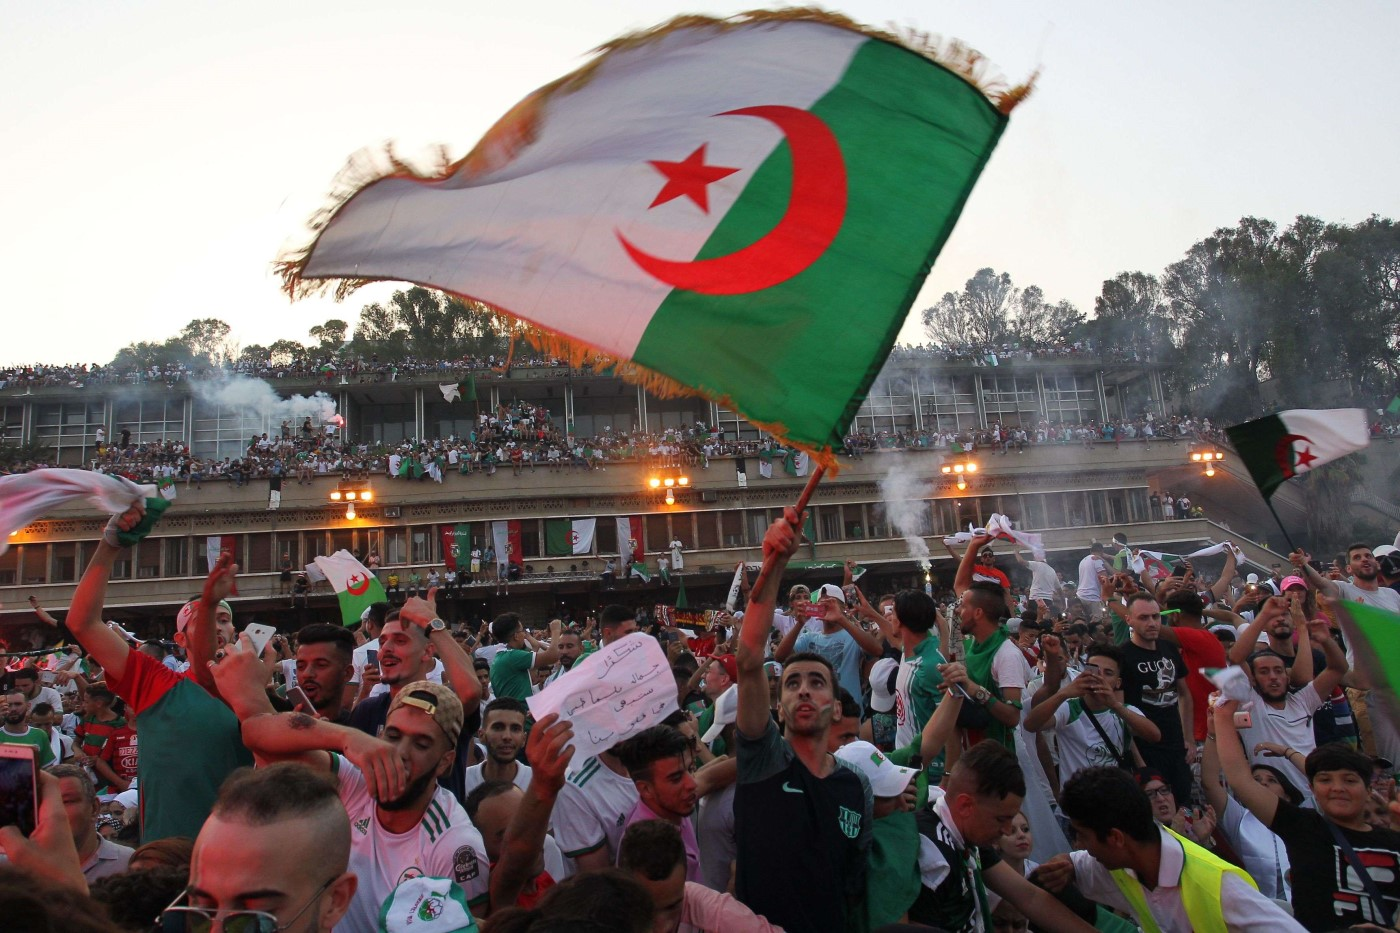 Algerian fans celebrate after their team won the 2019 Africa Cup of Nations (CAN) Final football match between Senegal and Algeria, in Algiers on July 19, 2019. (AFP)